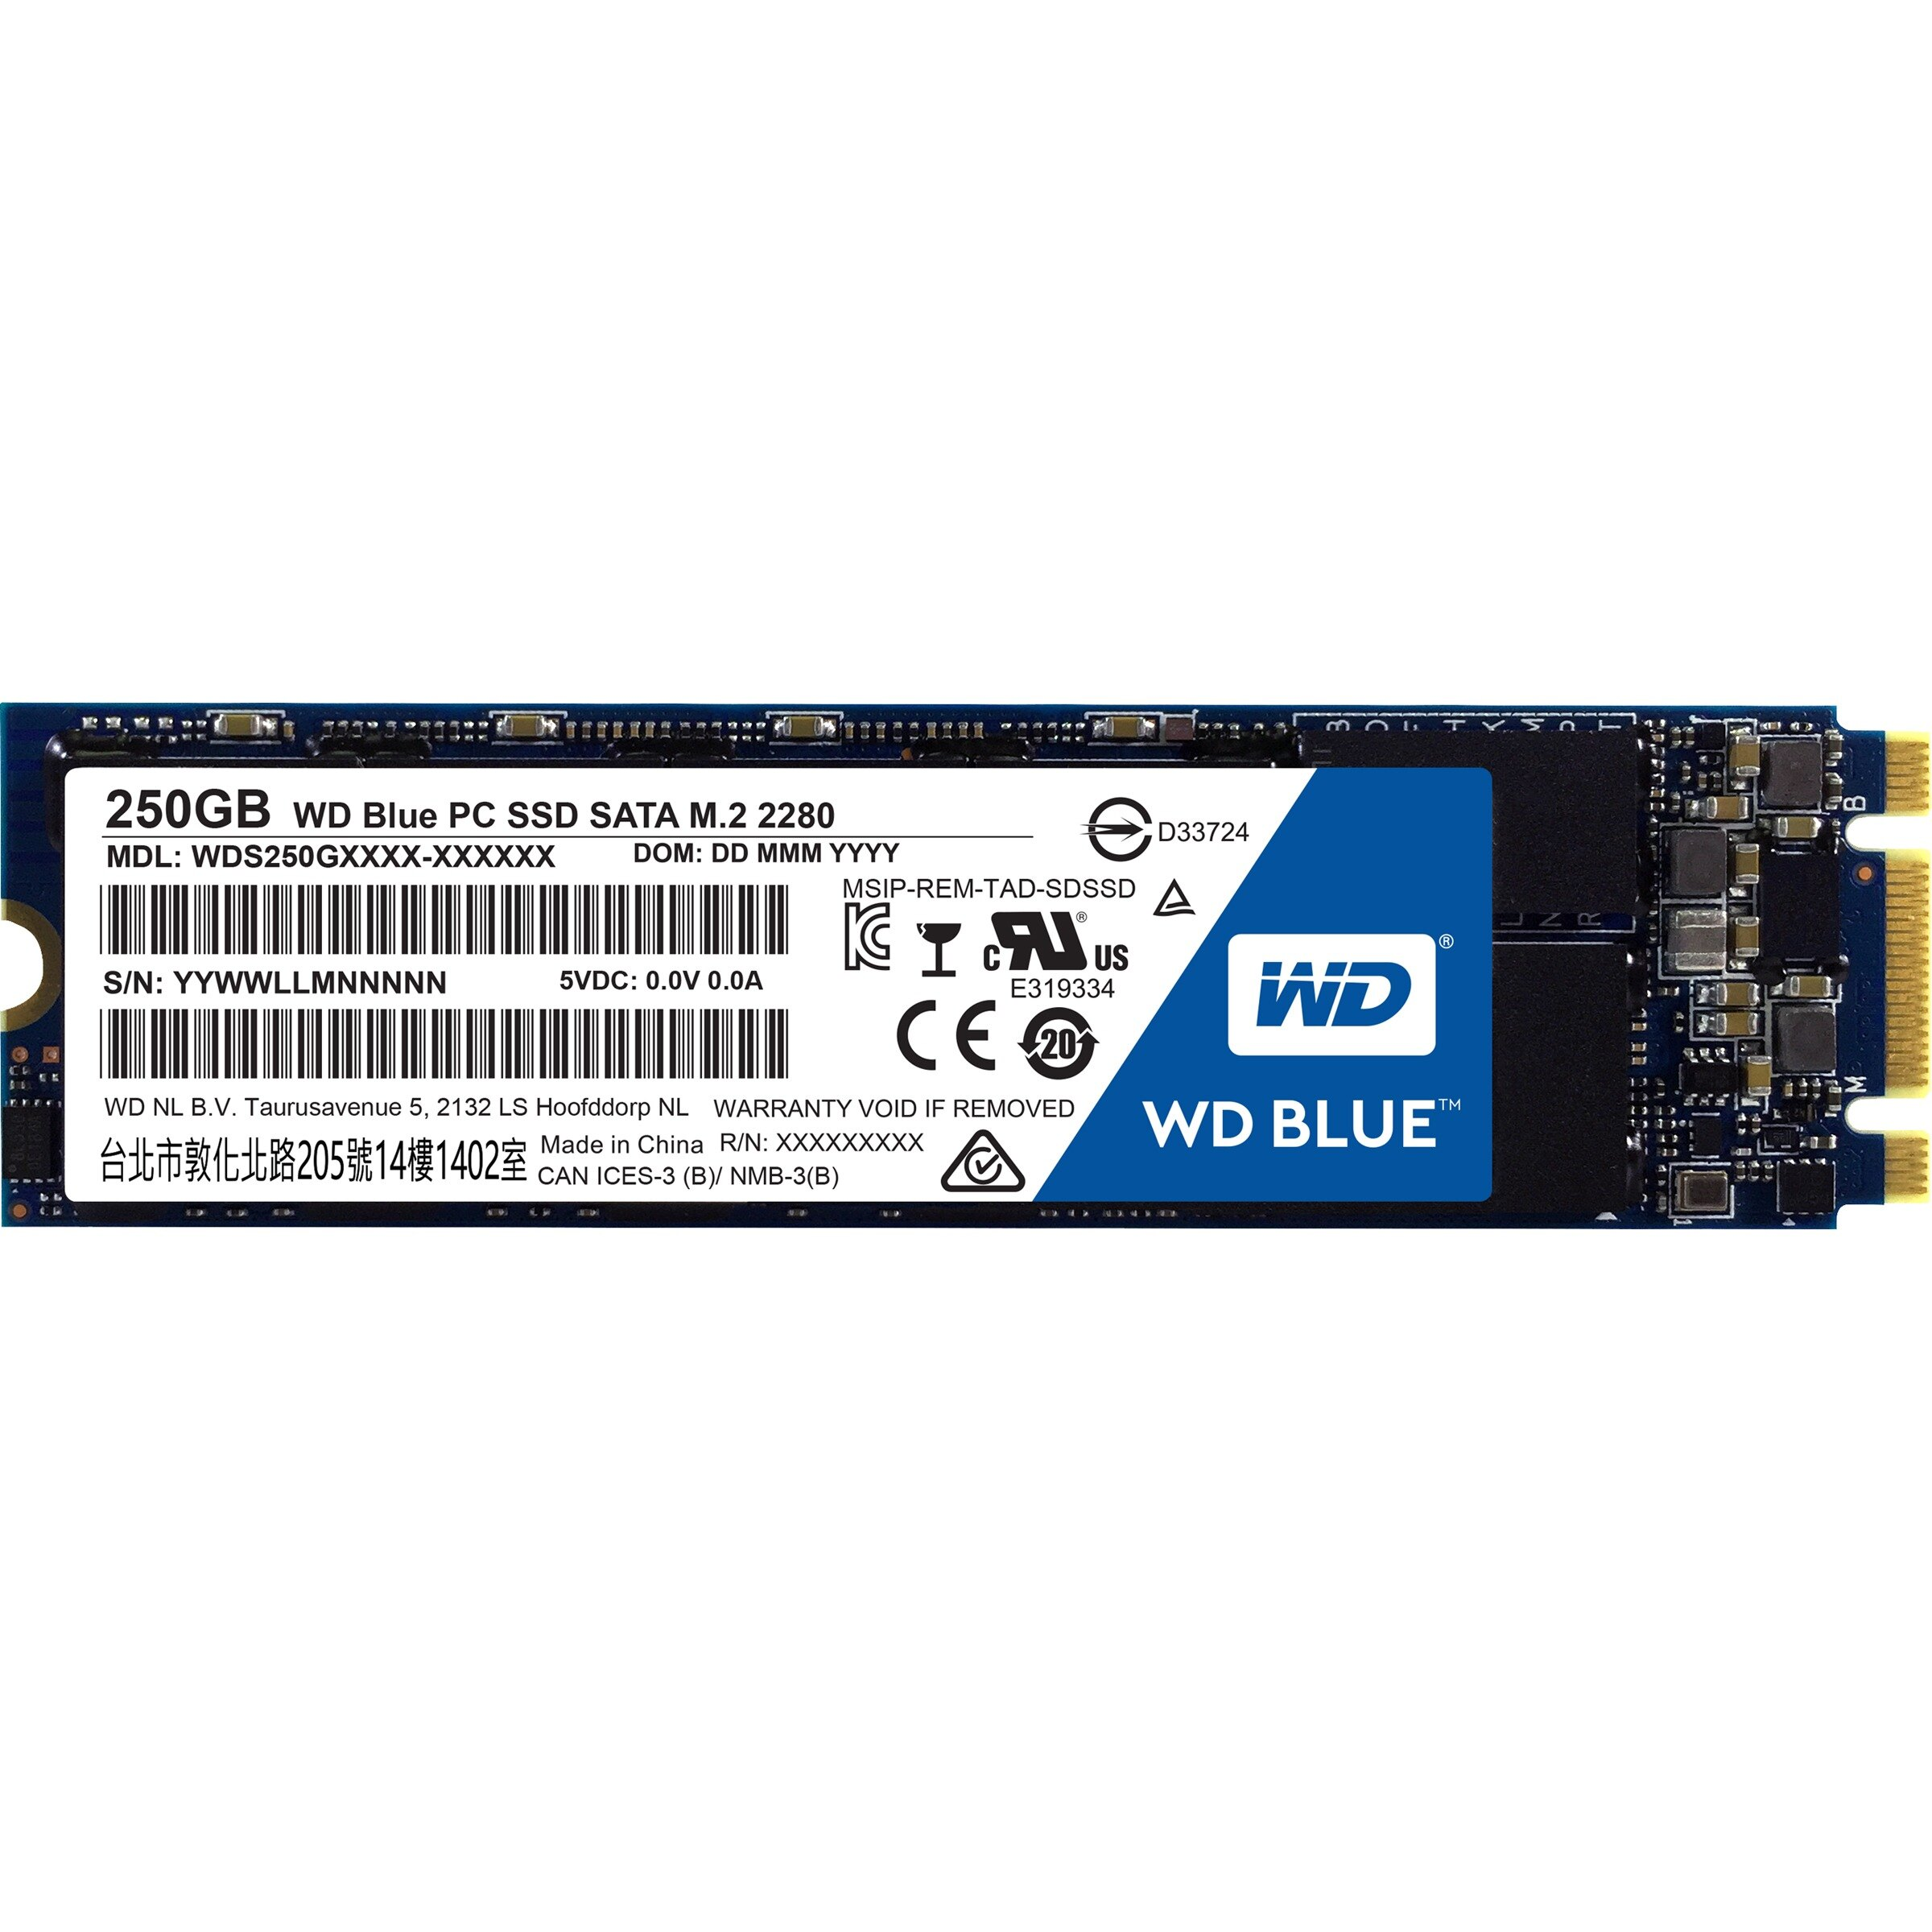 WD Blue SSD M.2 2280 250GB SATA III 6Gb/s 80mm Western Digital PC Internal SSD Solid State Drive 540MB/s Maximum Read Transfer Rate 500MB/s Maximum Write Transfer Rate WDS250G1B0B 0